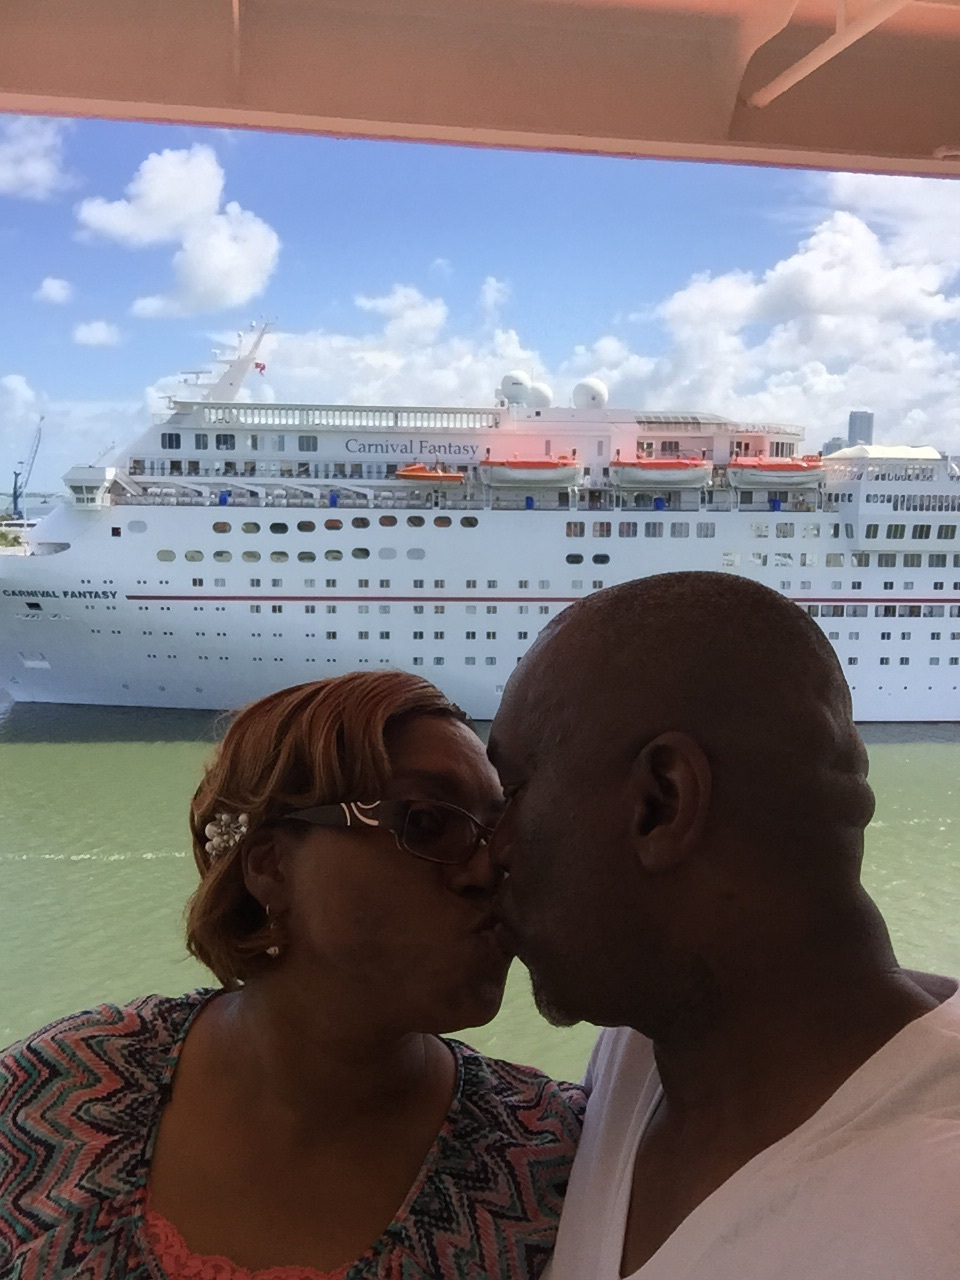 Ready for a time of fun and relaxation: Empress of the Seas